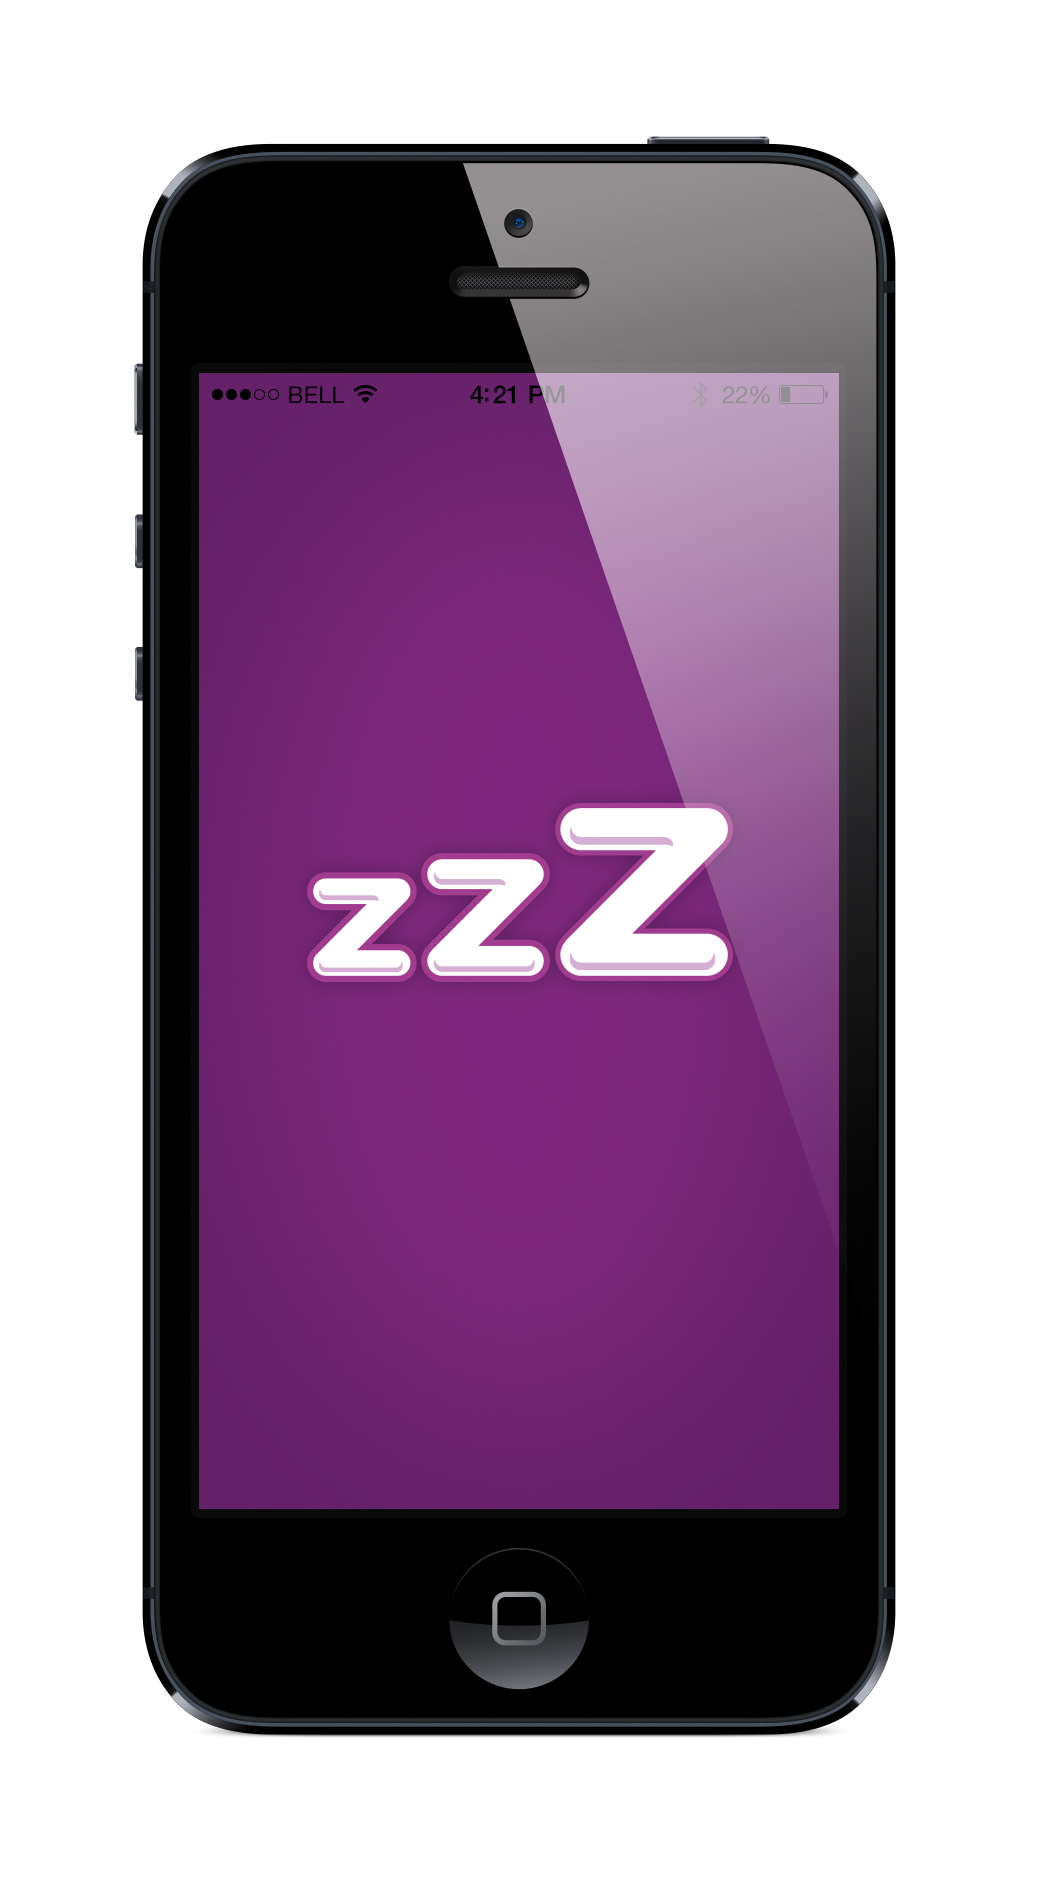 App works as an alarm o'clock that allows them to dismiss all calls, messages and notifications while sleeping.